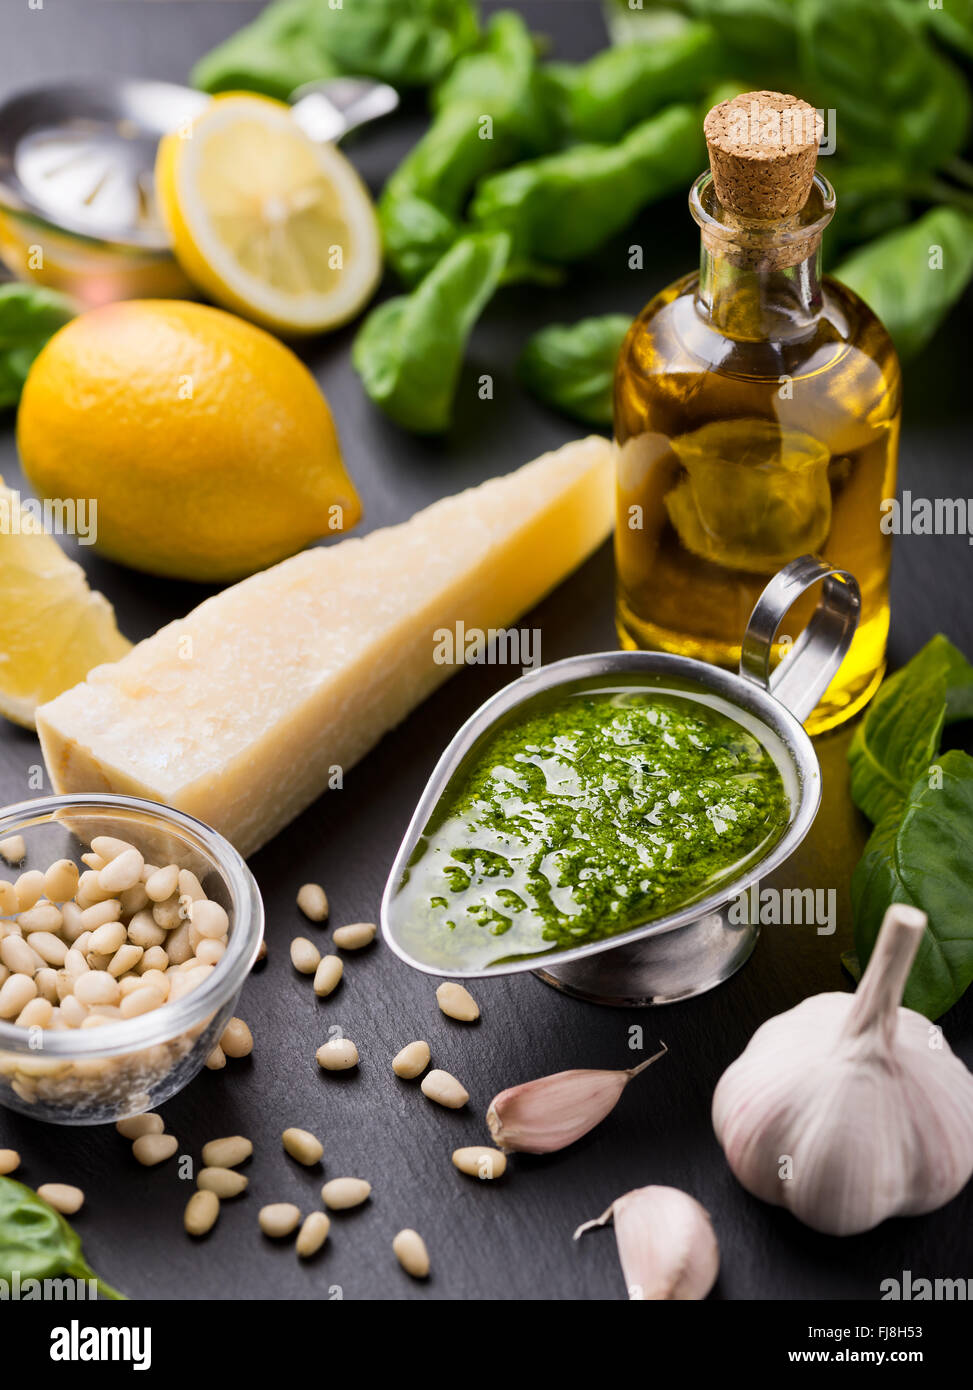 Composition with ingredients for sauce pesto preparing - Stock Image